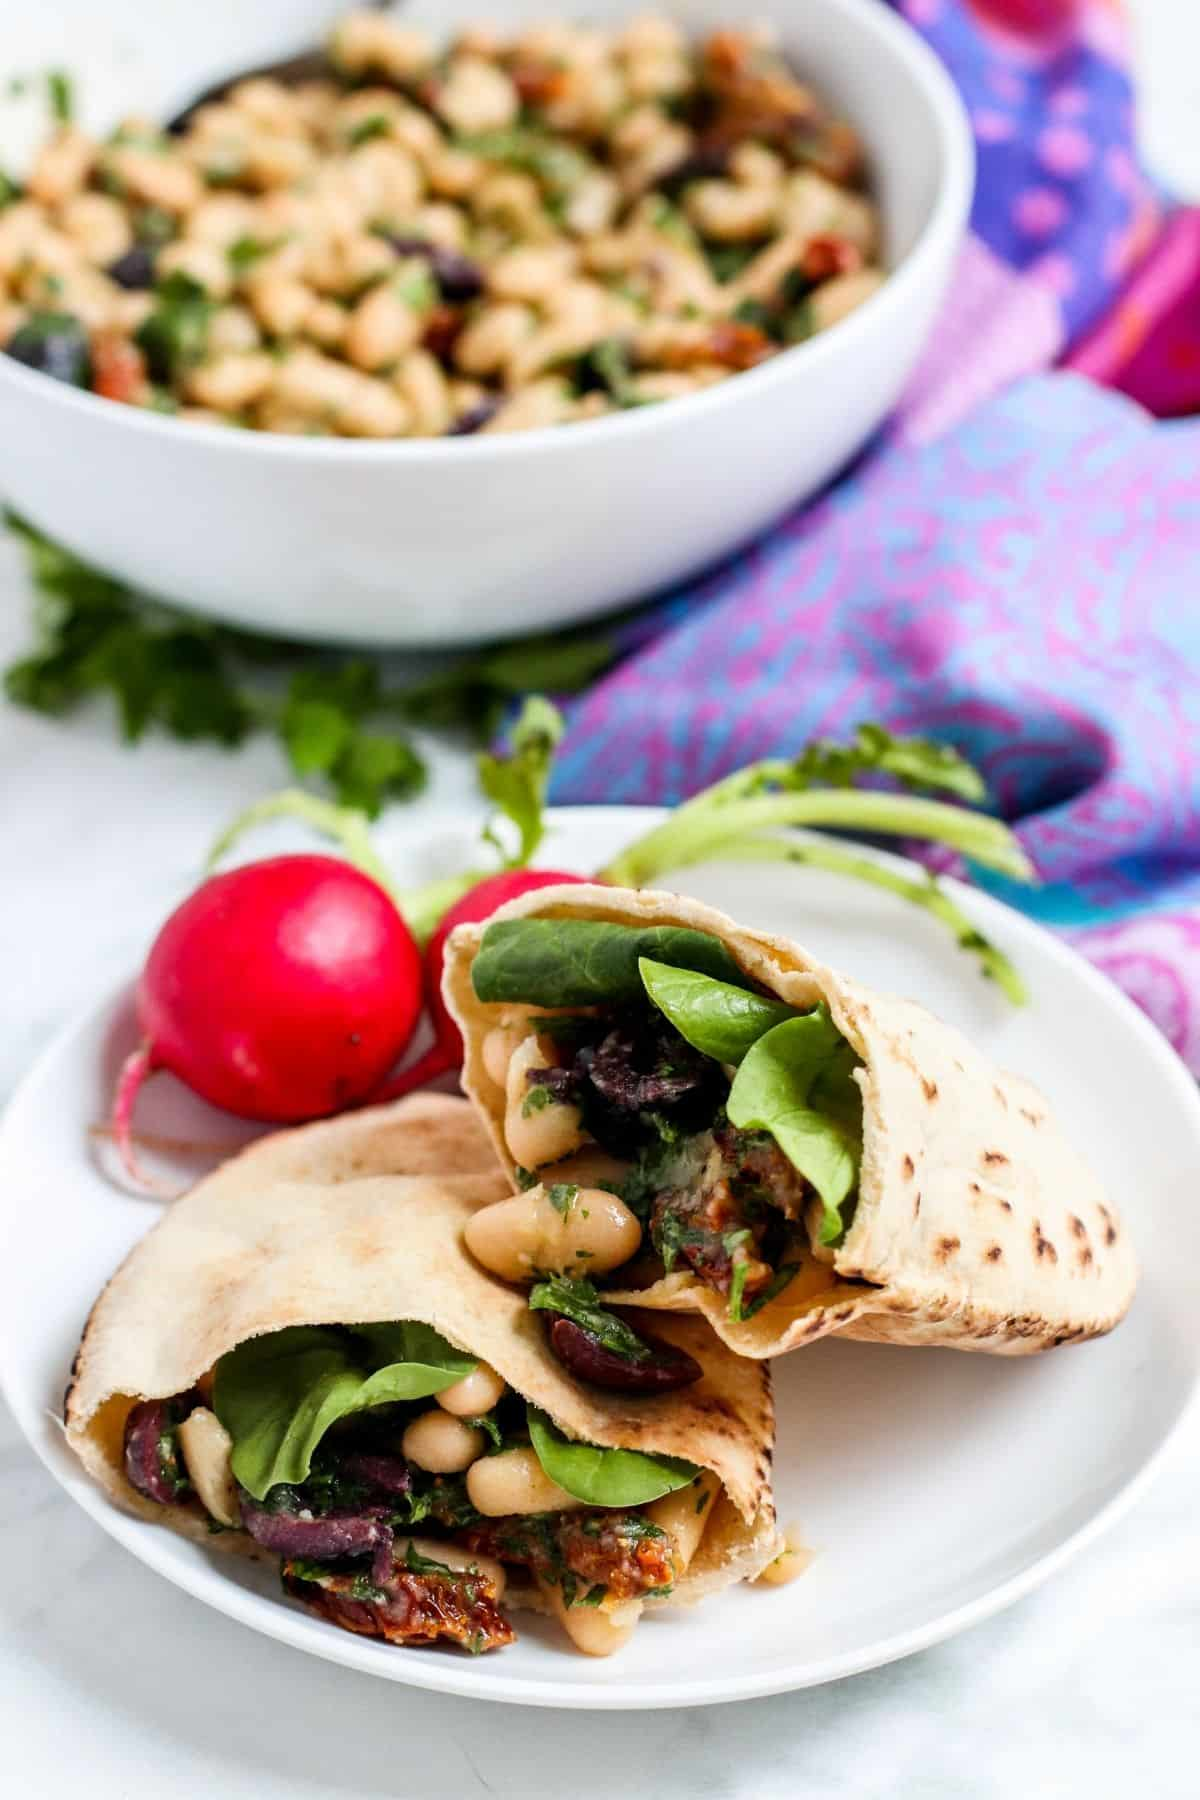 Pita pockets stuffed with spinach and white bean salad